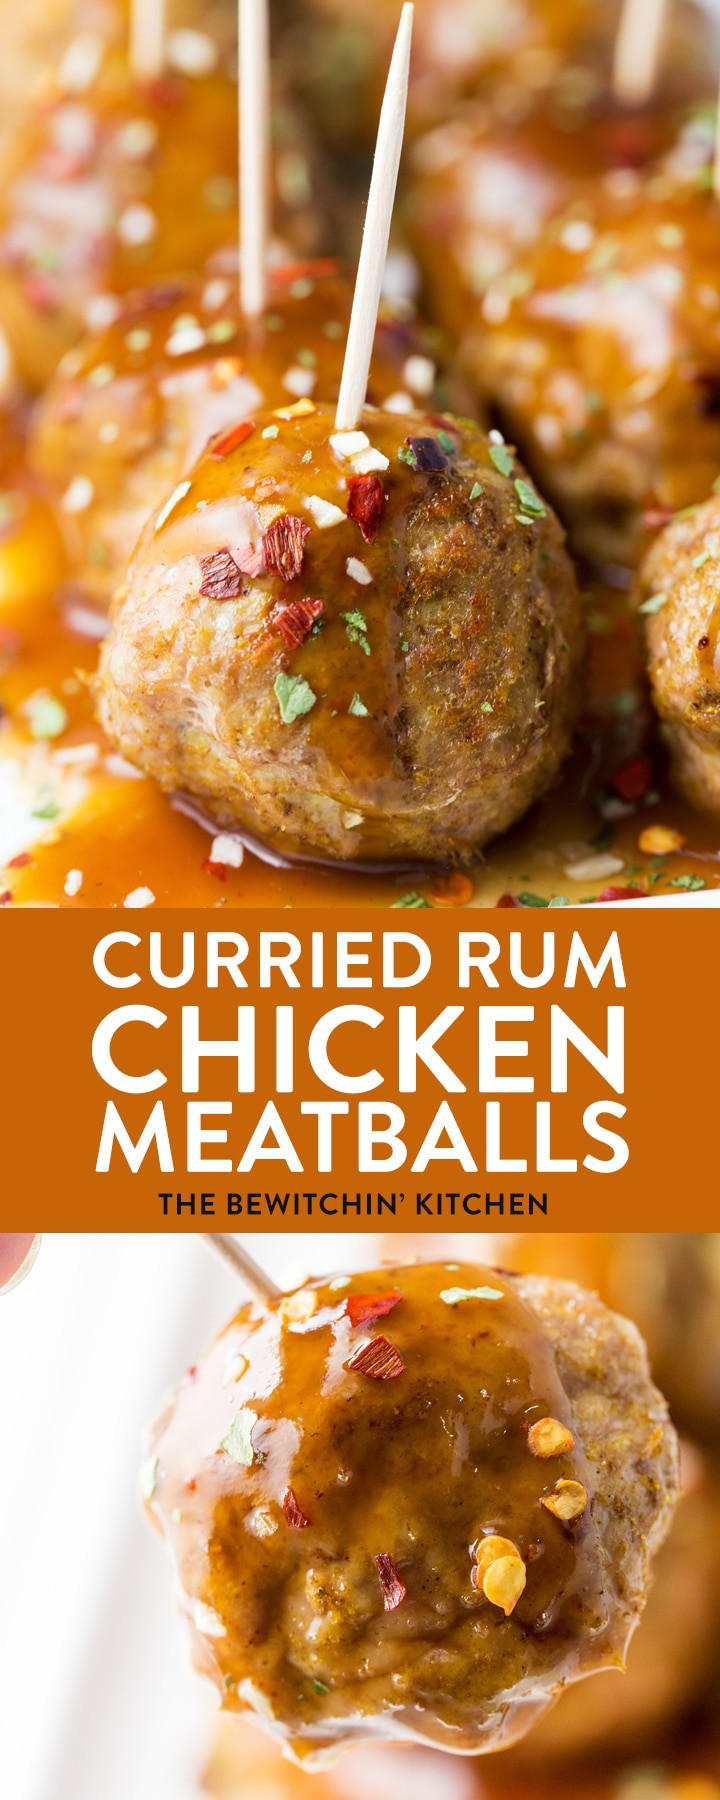 These curried rum chicken meatballs are not only easy to make but incredibly tasty! Whether it's for an appetizer or a main dish for a twist on chicken dinner, give these chicken balls a try! #chickenmeatballs #currychickenmeatballs #curryrummeatballs #healthychickenrecipes